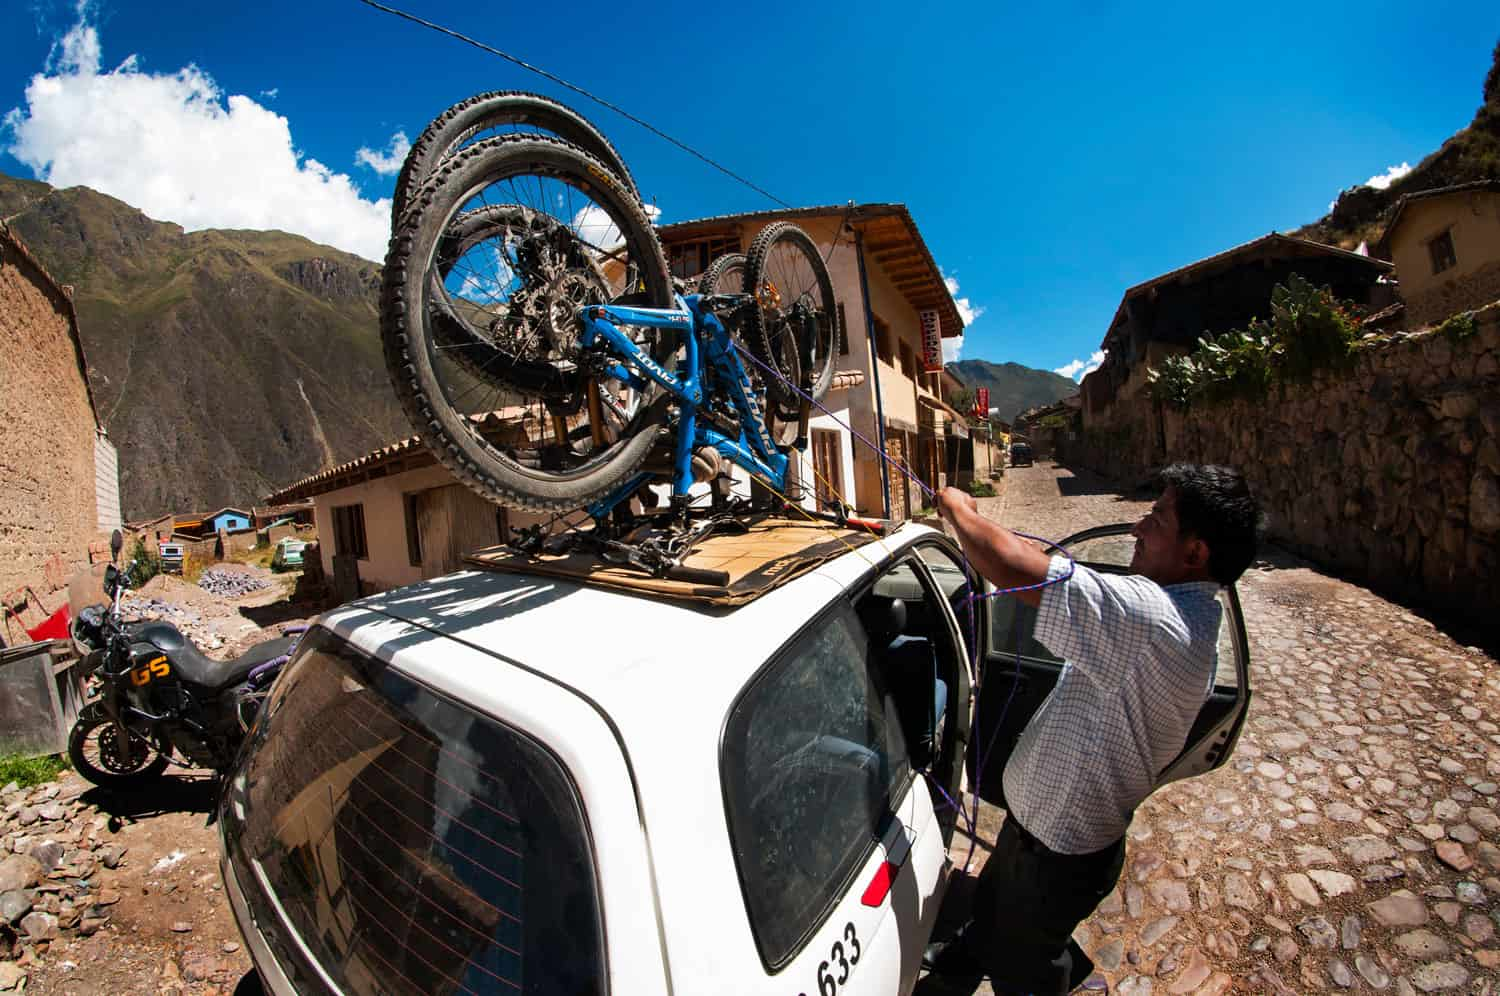 One particularly creative way of transporting bikes in Peru